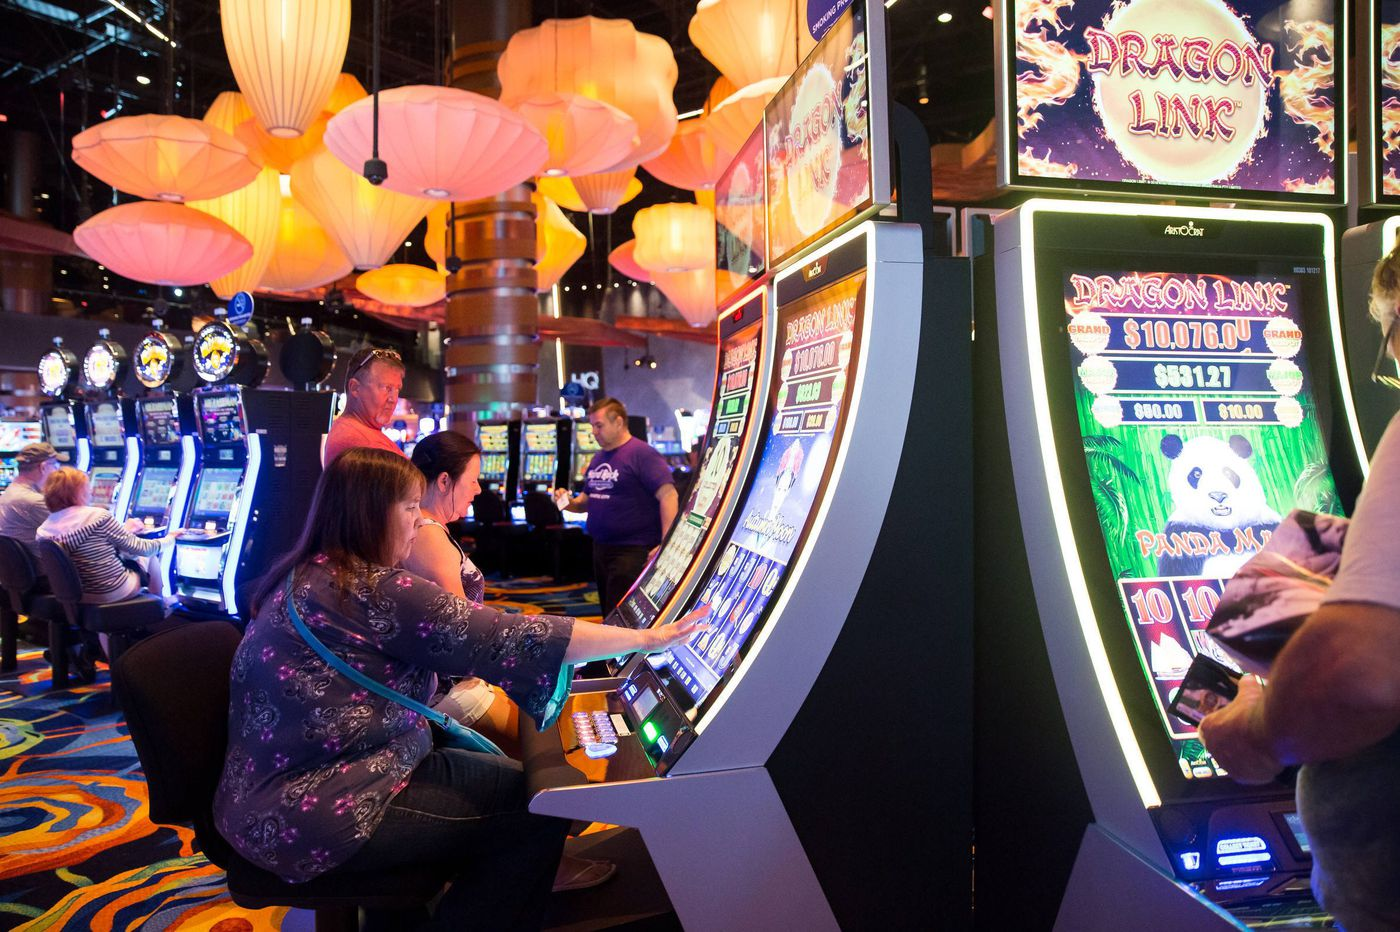 N.J. gaming revenue up 12.8% thanks to internet, sports betting, new casinos